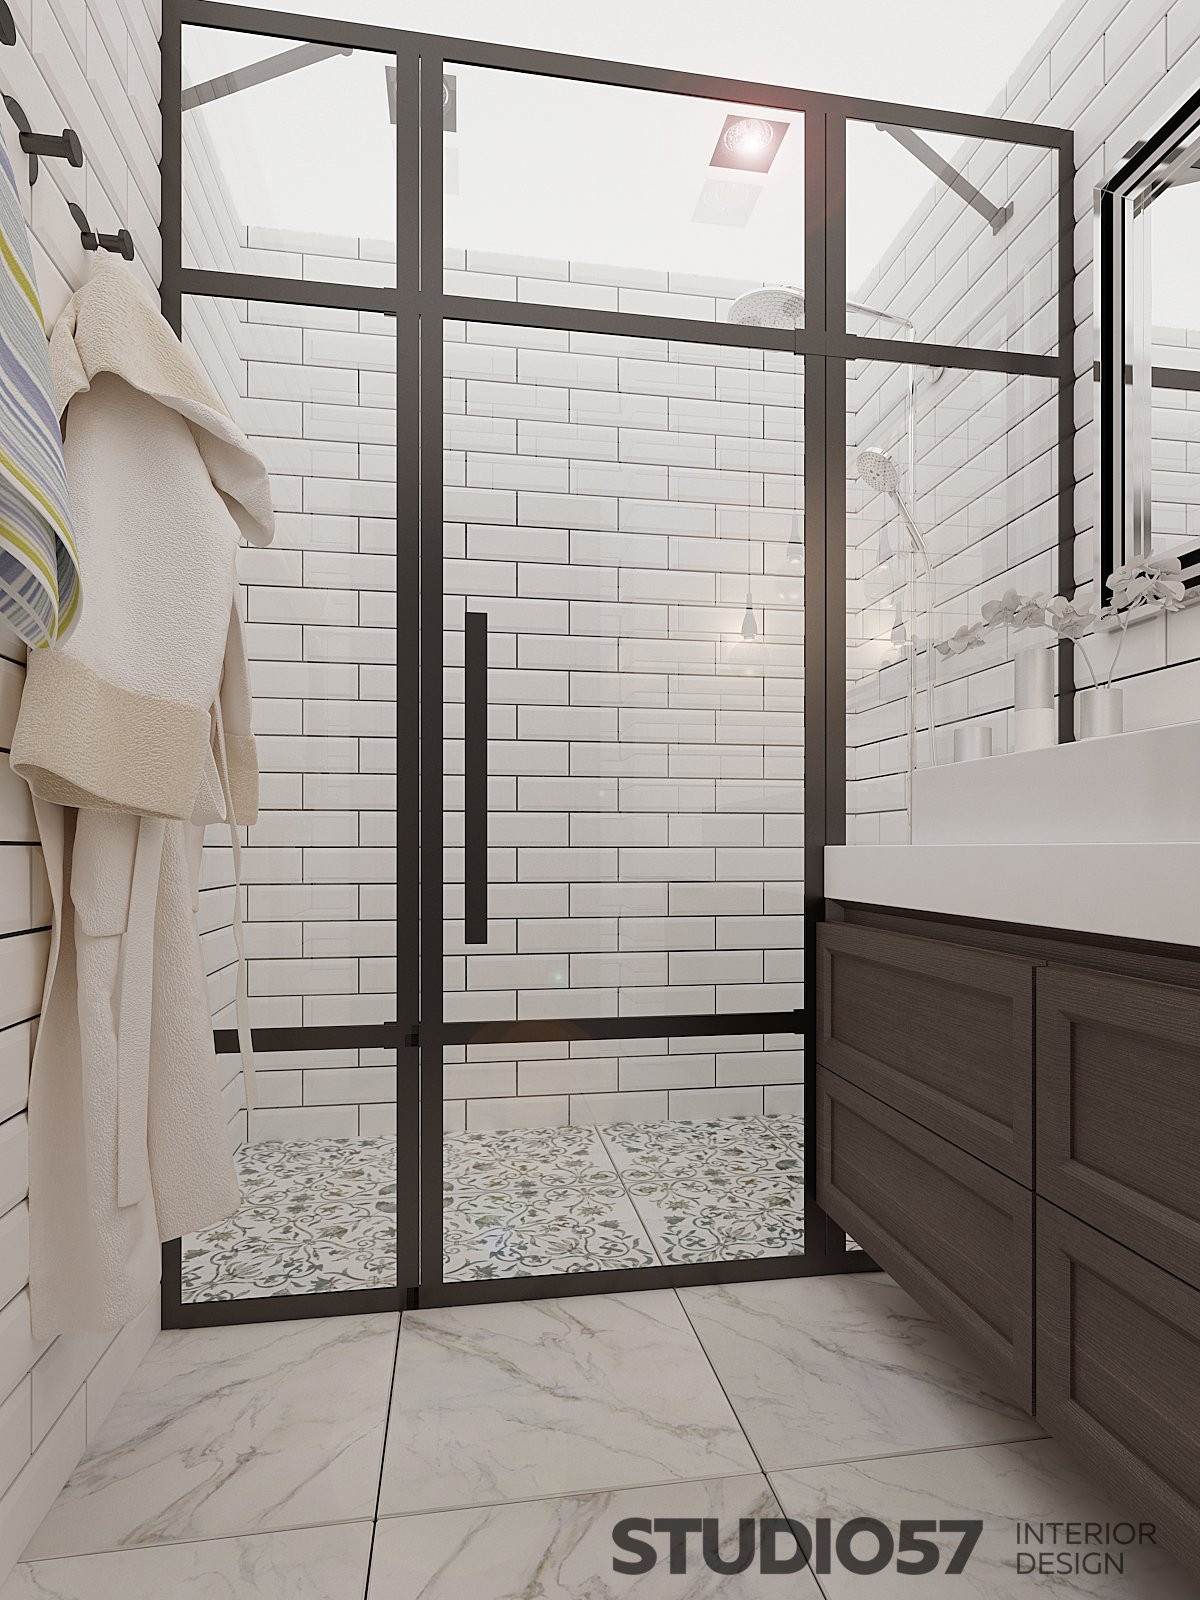 Design of a modern bathroom site photo